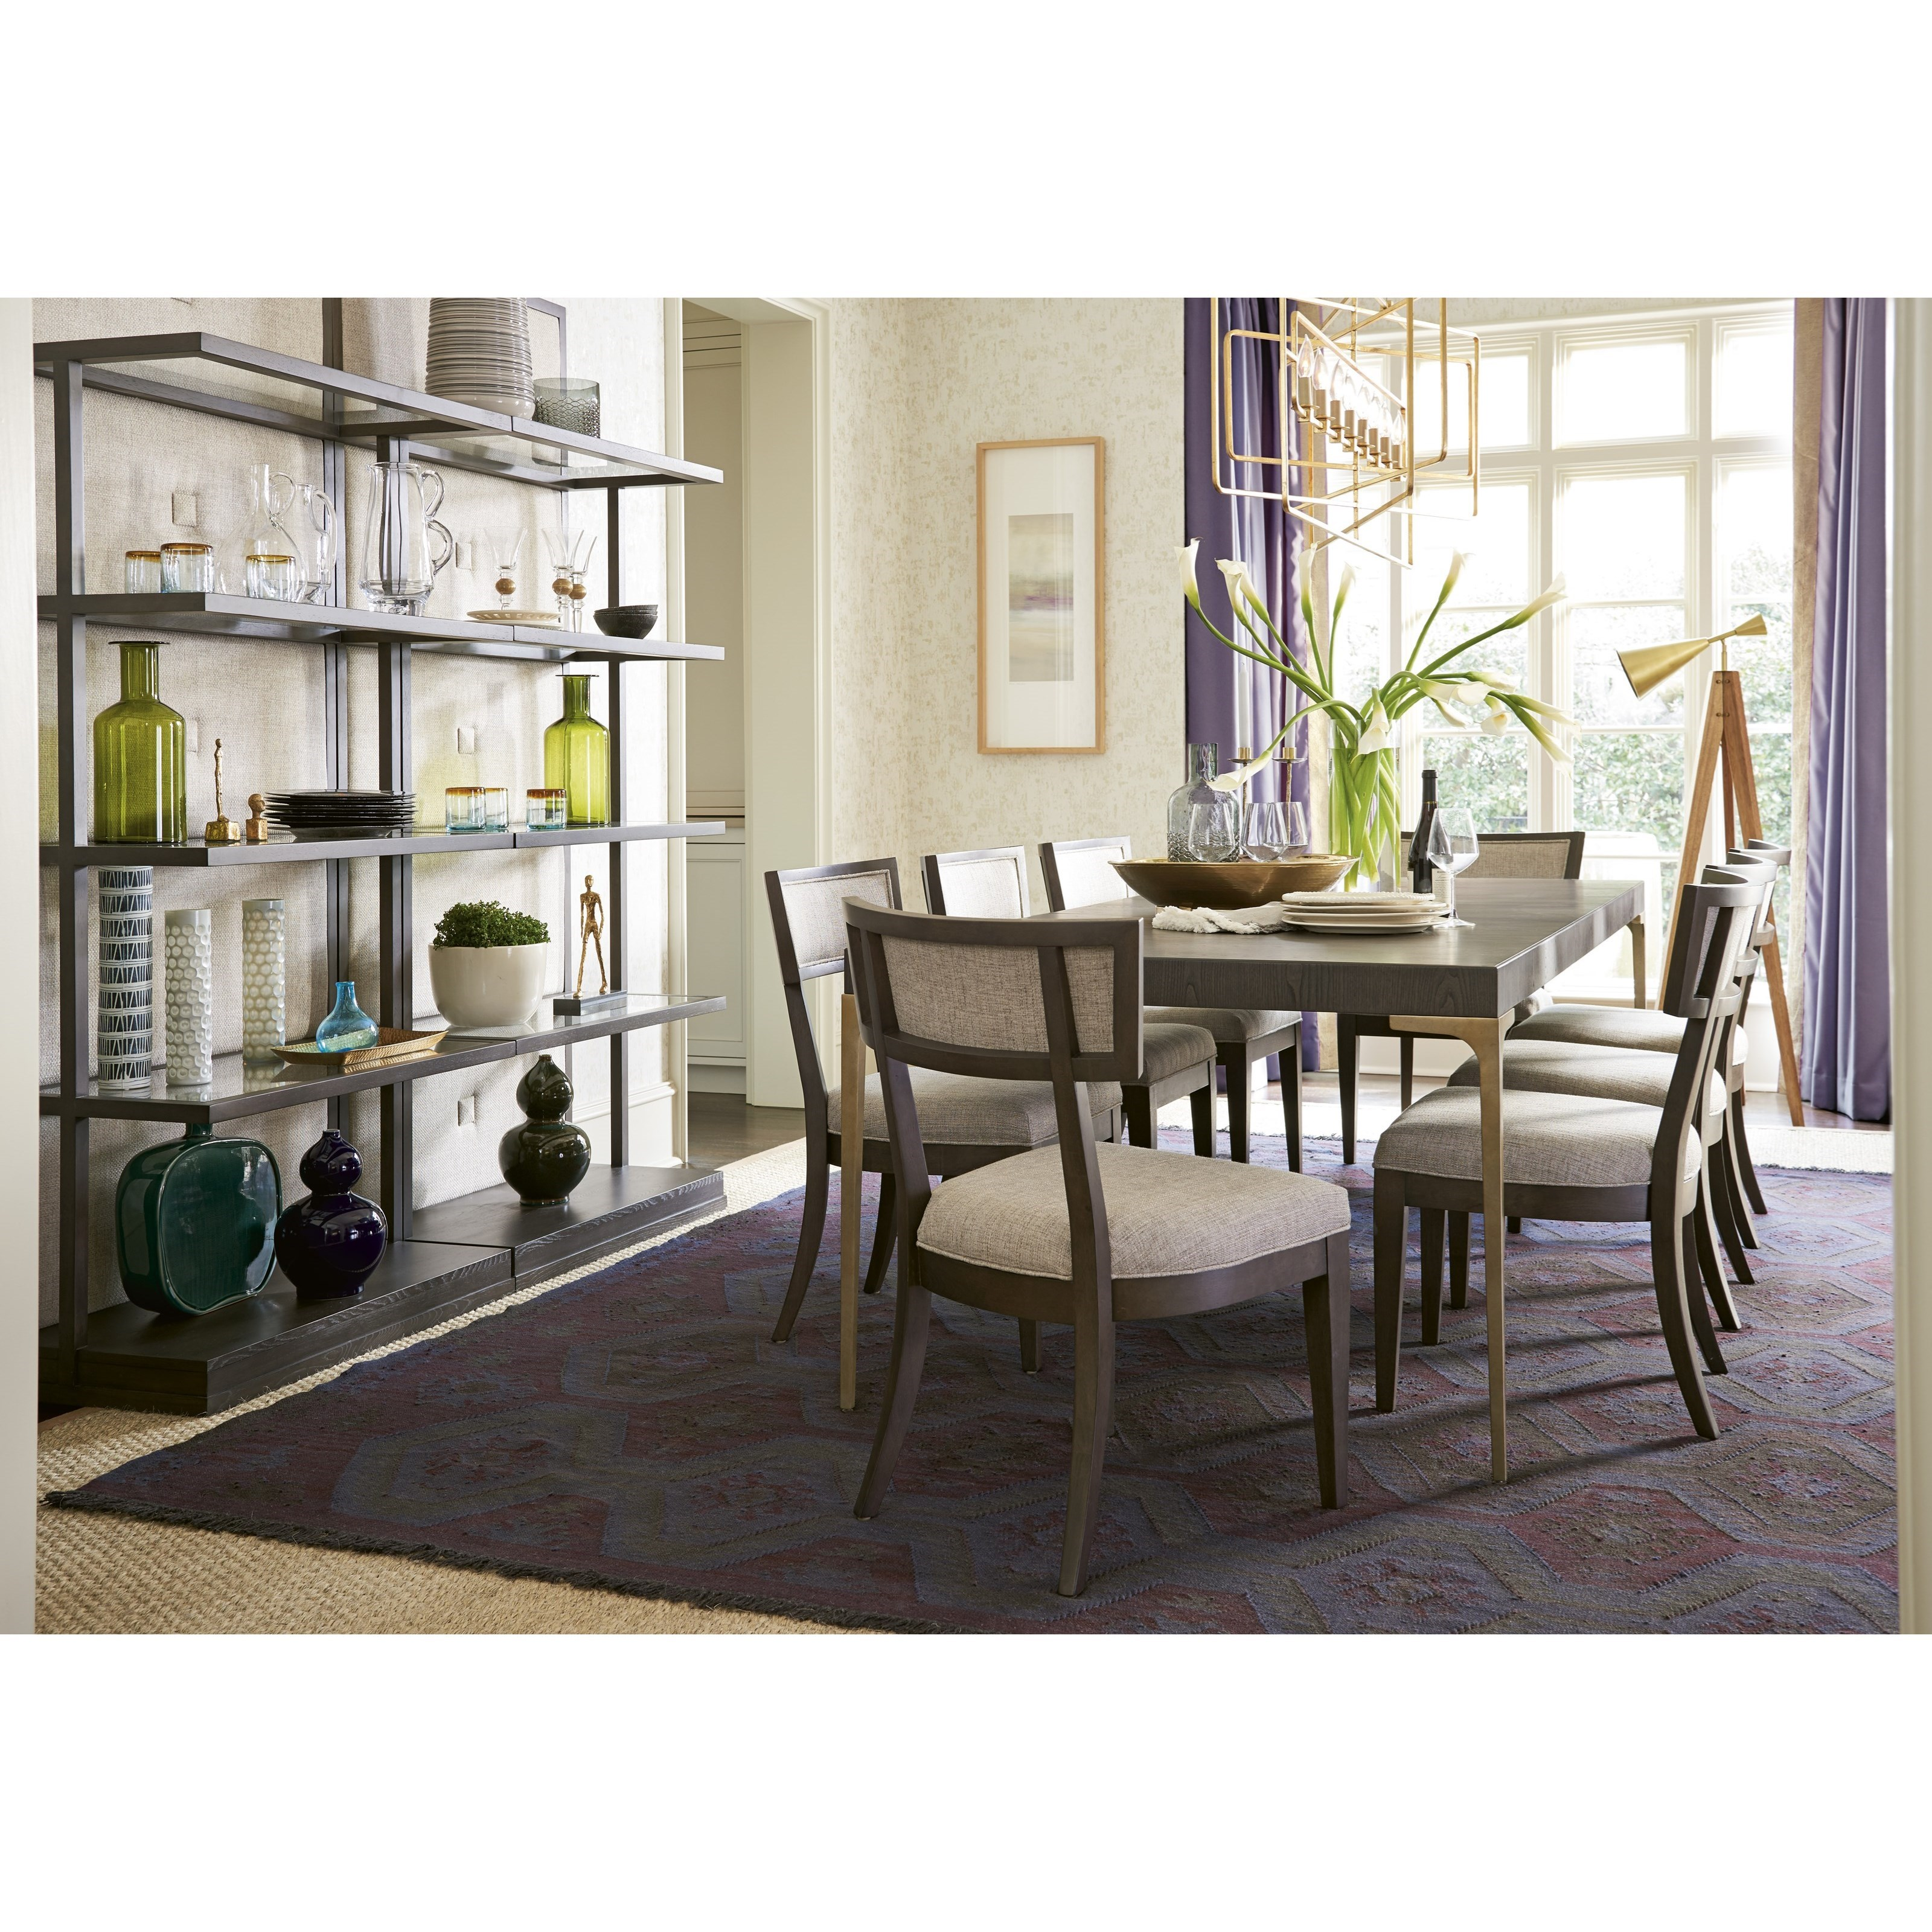 Soliloquy Formal Dining Room Group by Universal at Powell's Furniture and Mattress